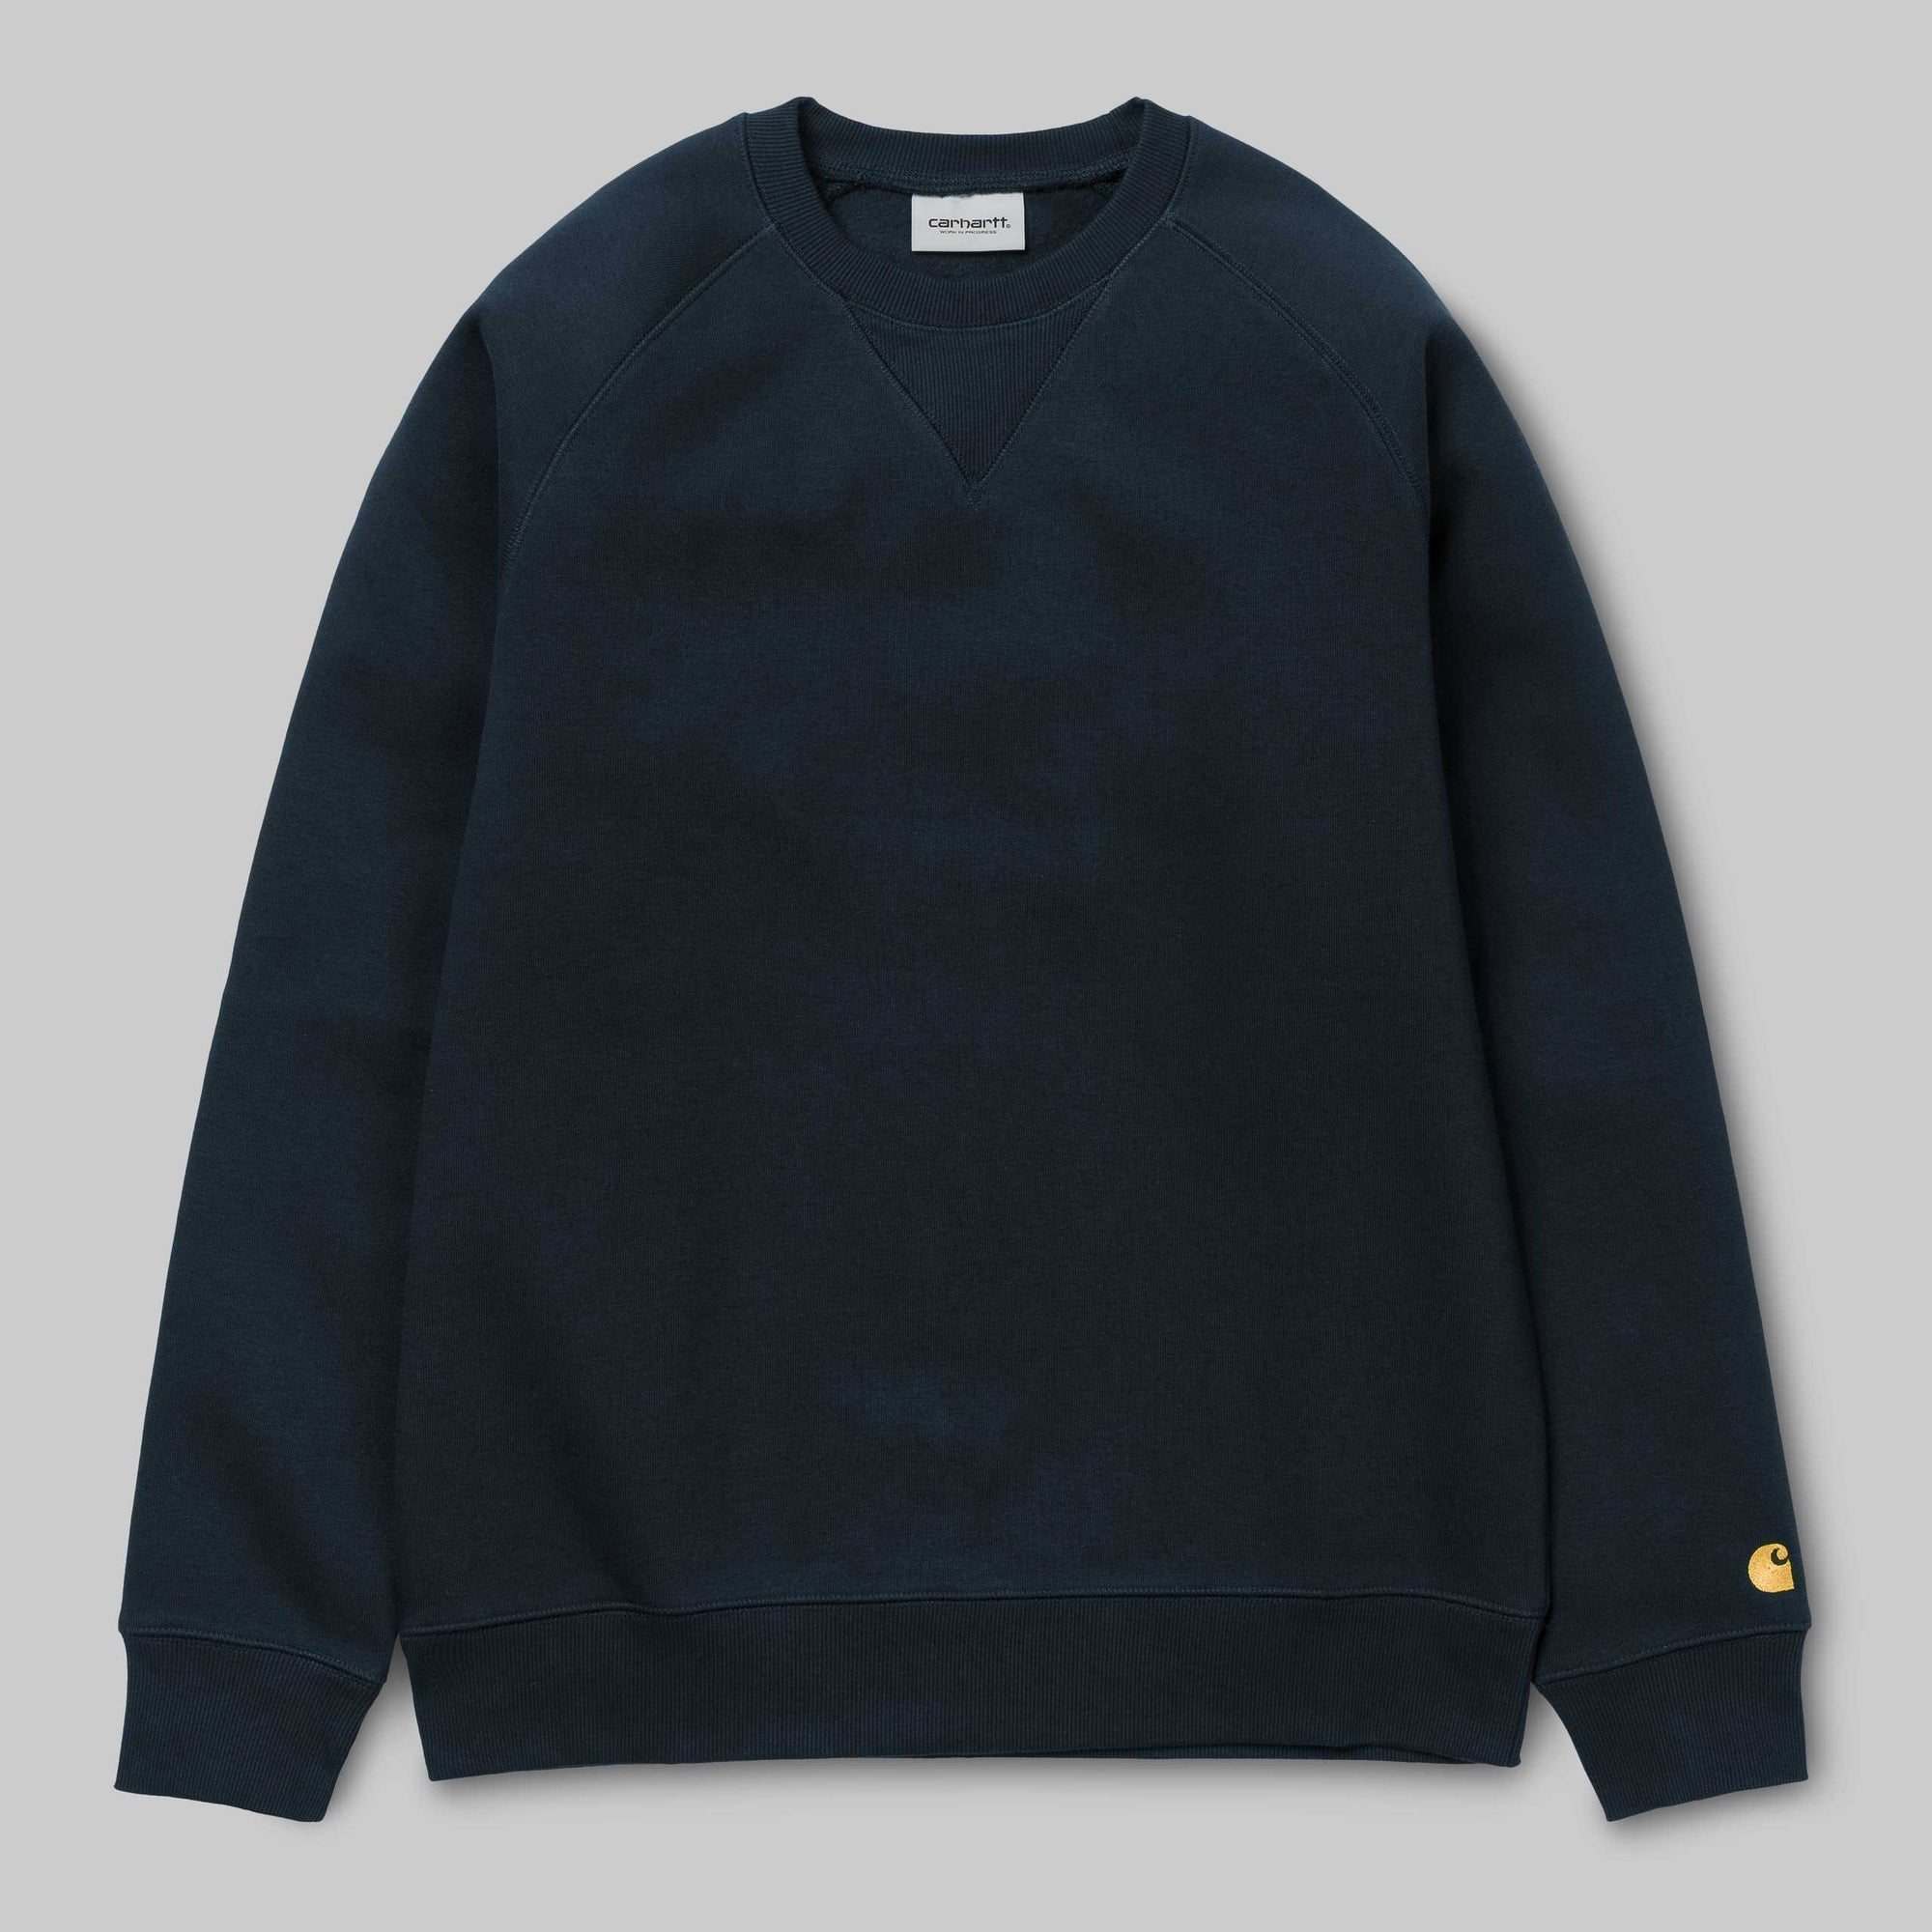 Carhartt WIP - Navy Chase Crew neck sweat